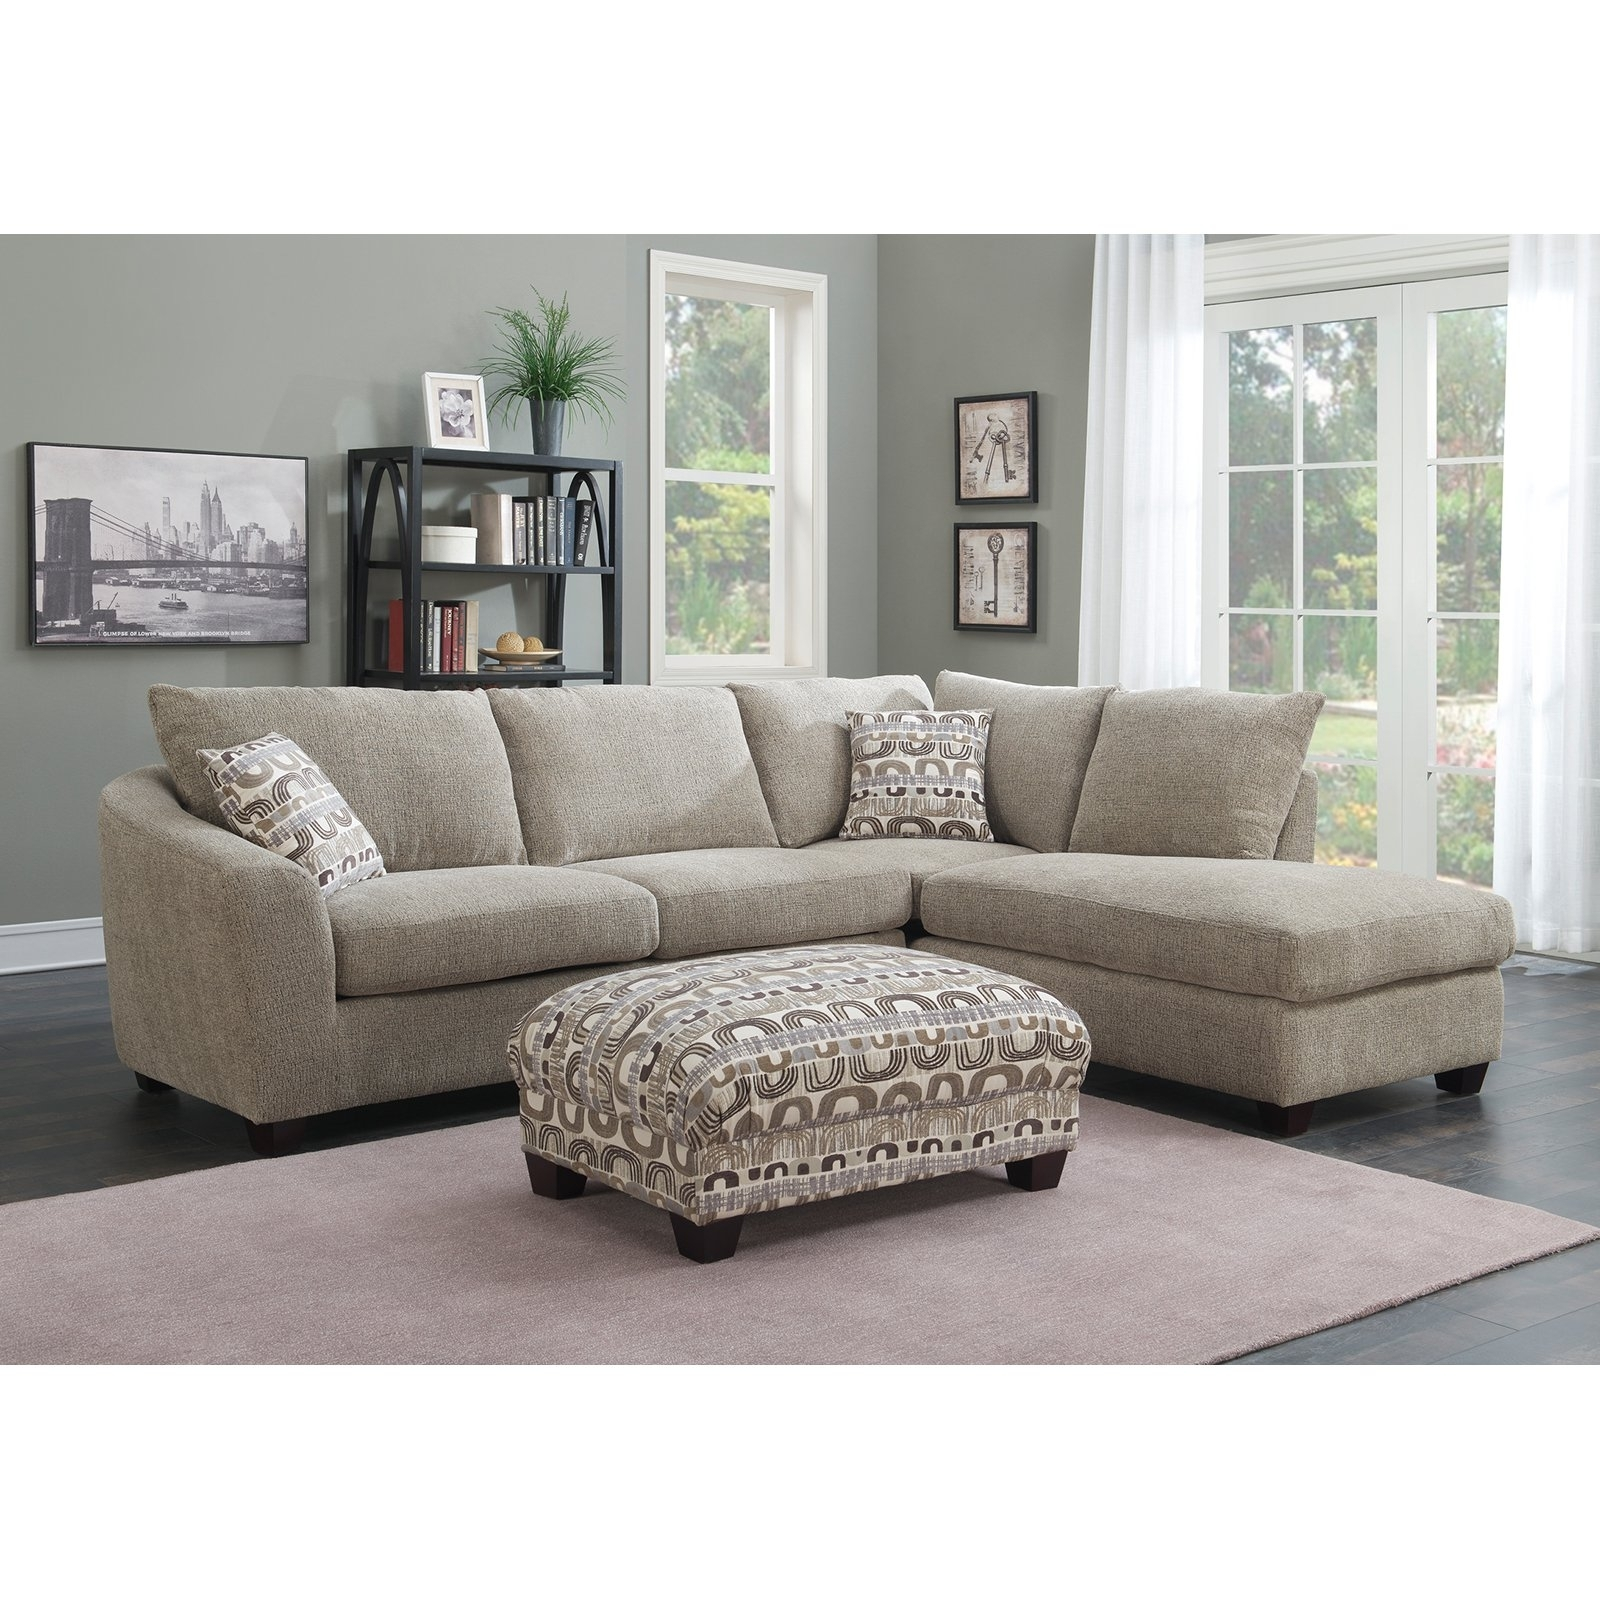 Emerald Home Urbana Piece Sectional Sofa With Chaise Couch Double With Delano 2 Piece Sectionals With Laf Oversized Chaise (View 23 of 30)